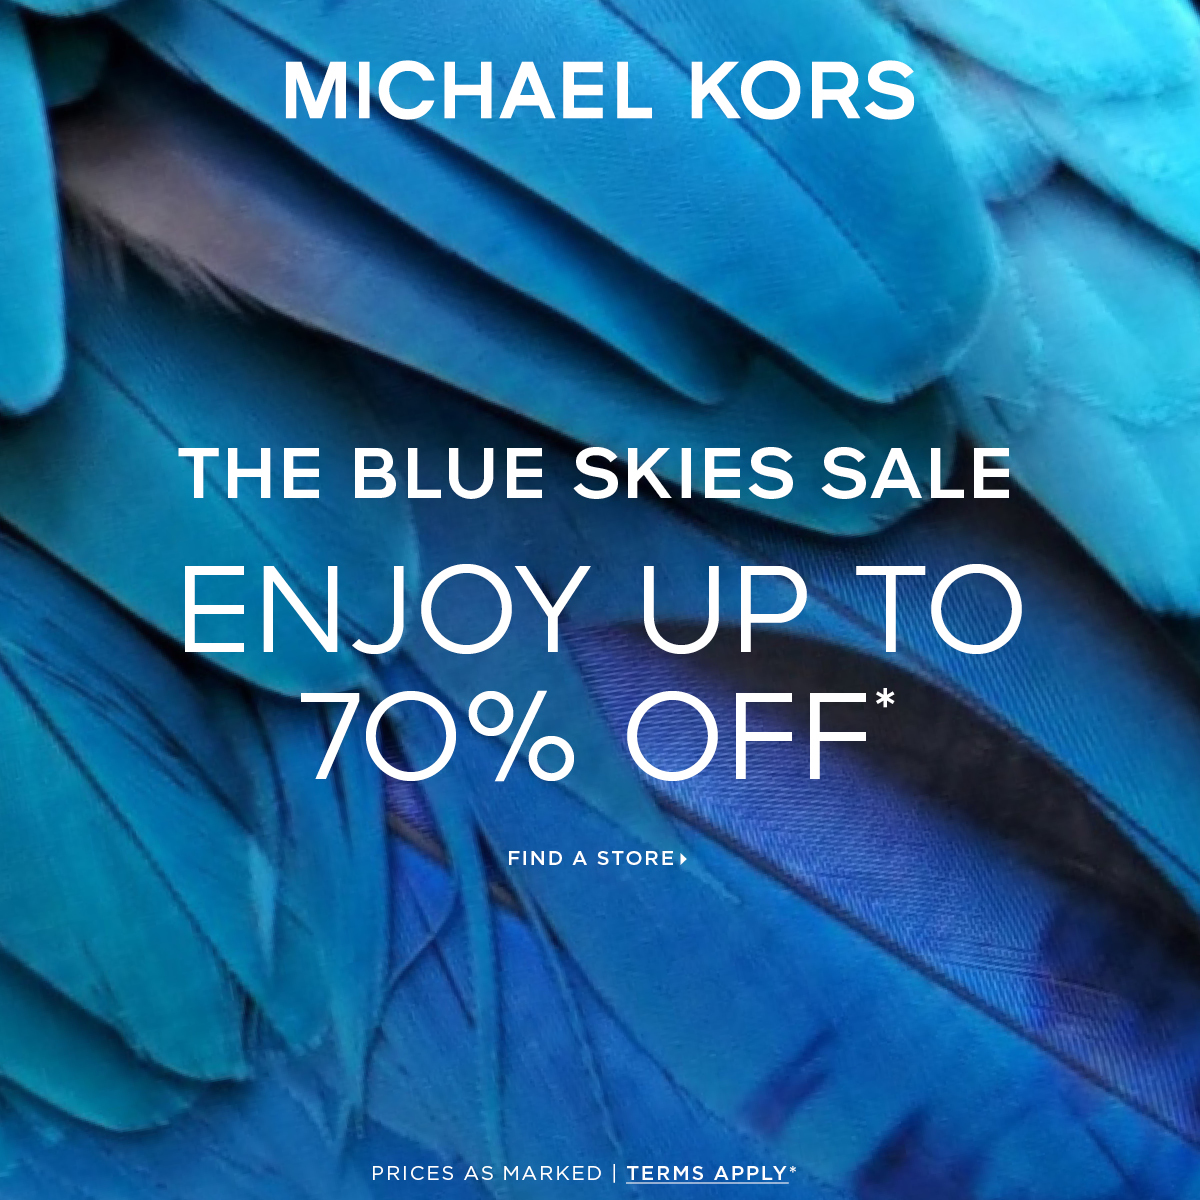 The Blue Skies Sale from Michael Kors